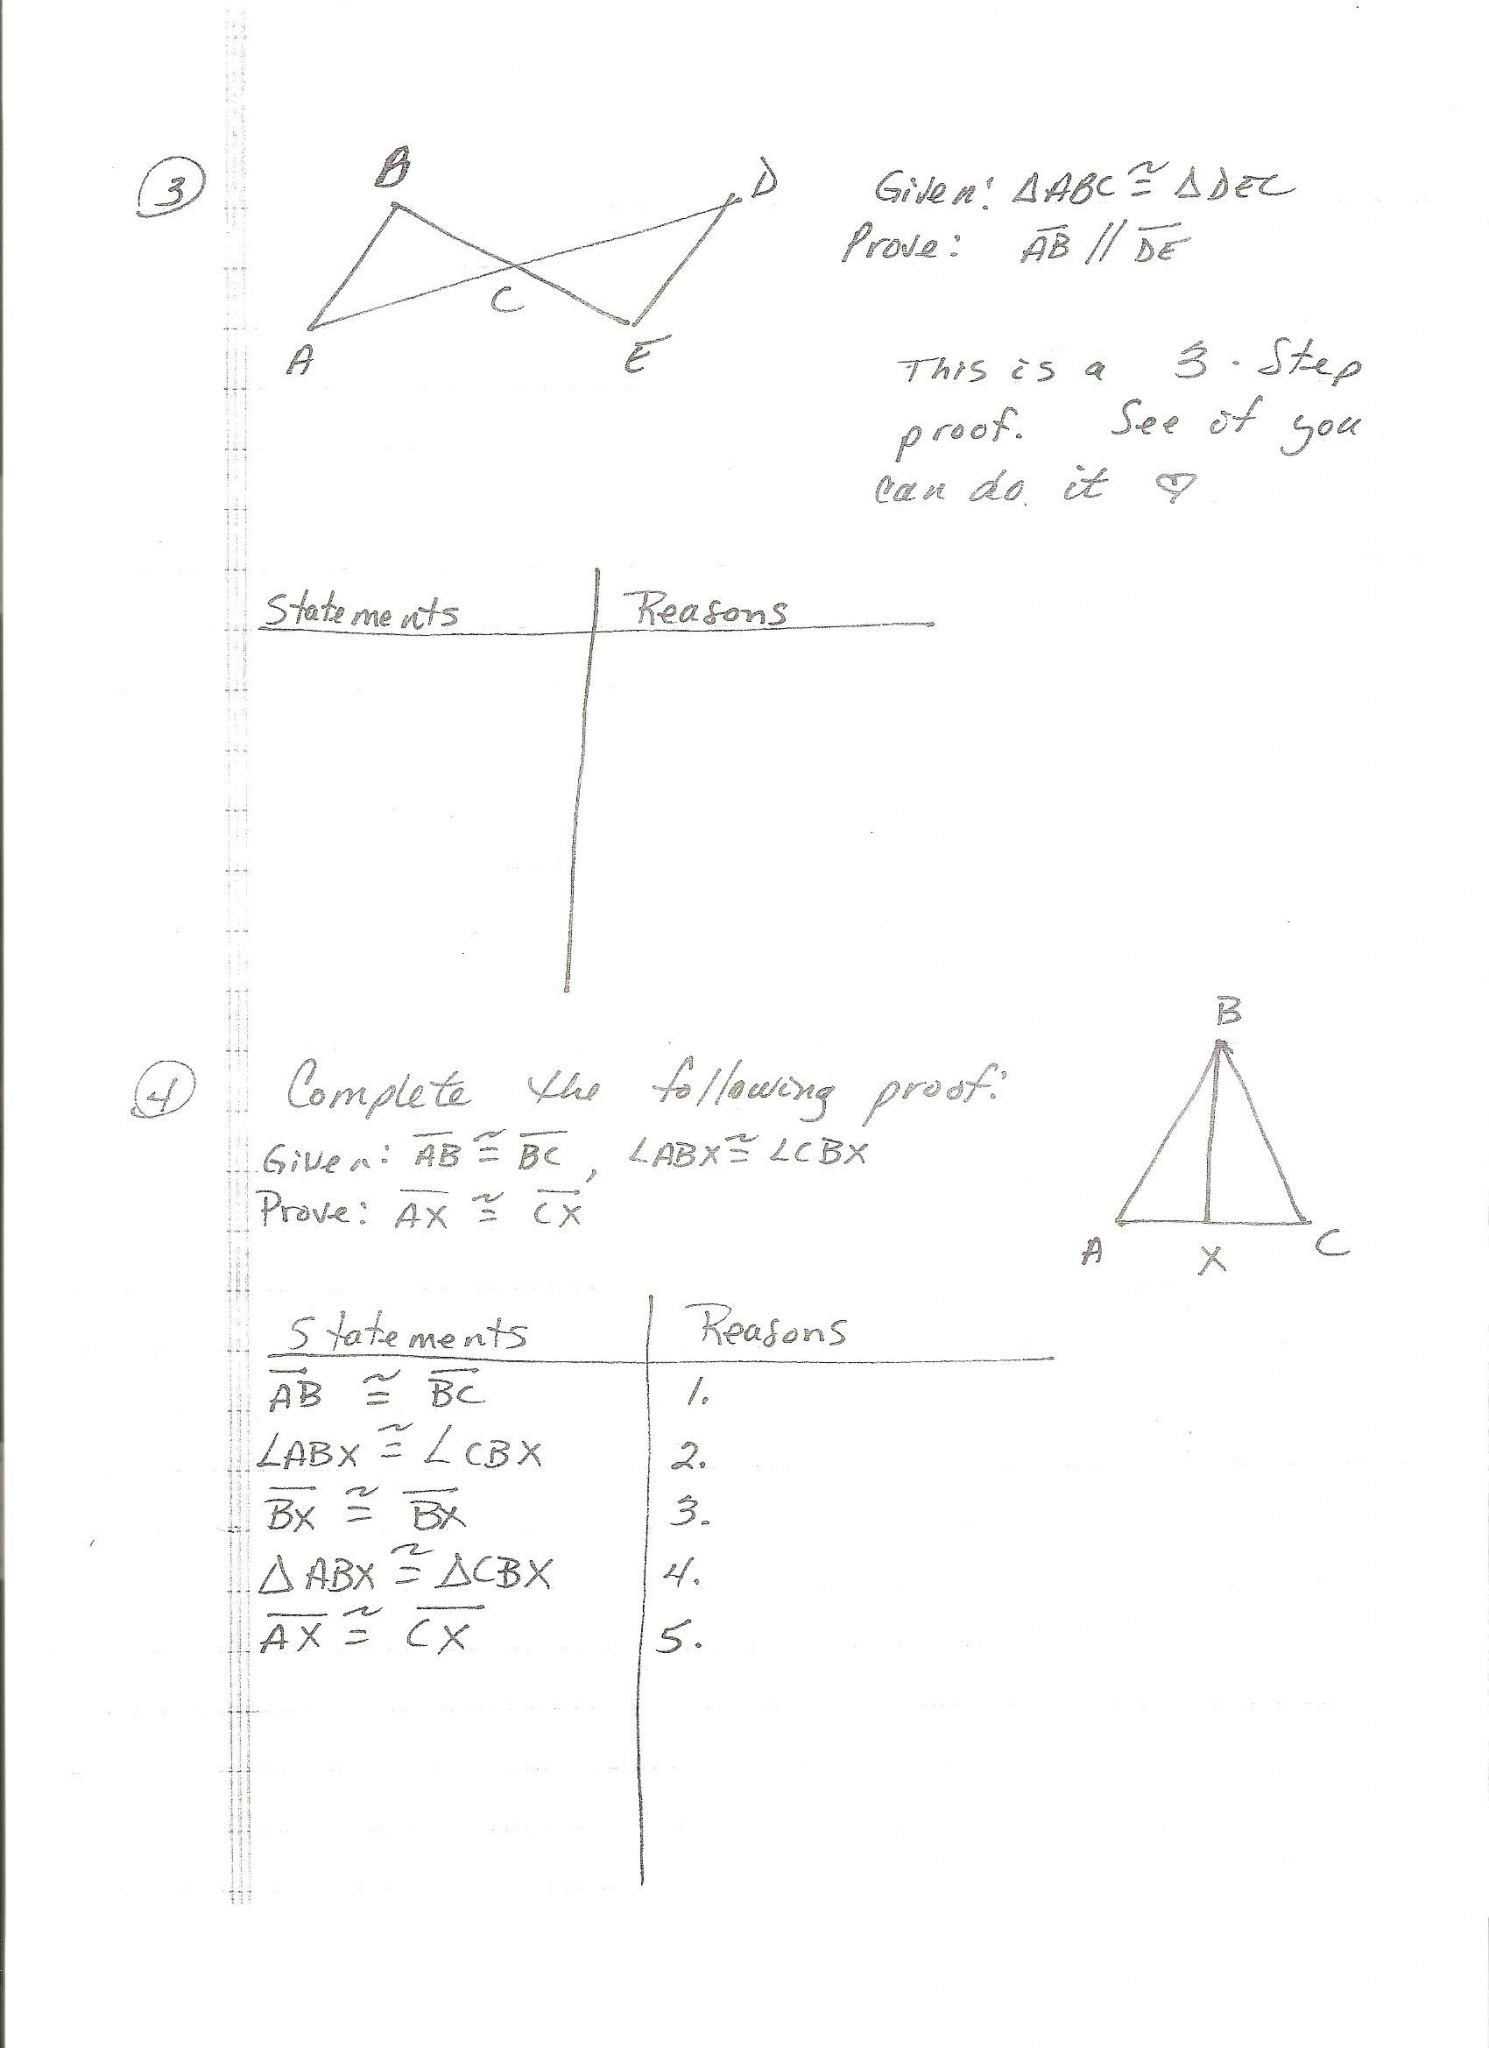 Proofs Worksheet 1 Answers